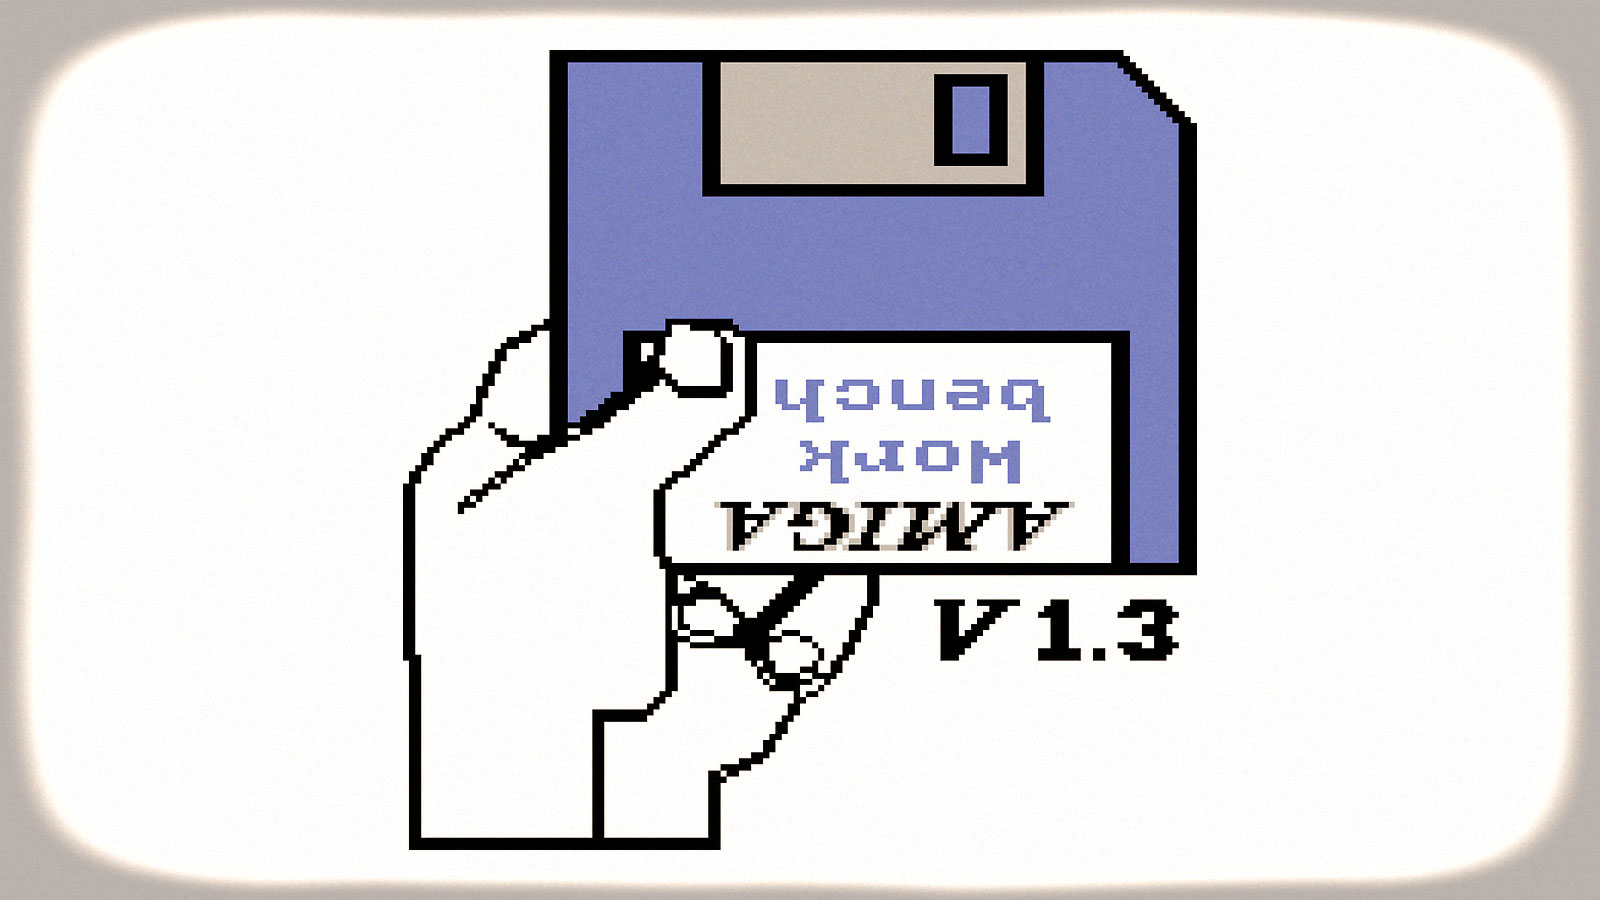 Vast collection of Amiga games, demos and software uploaded